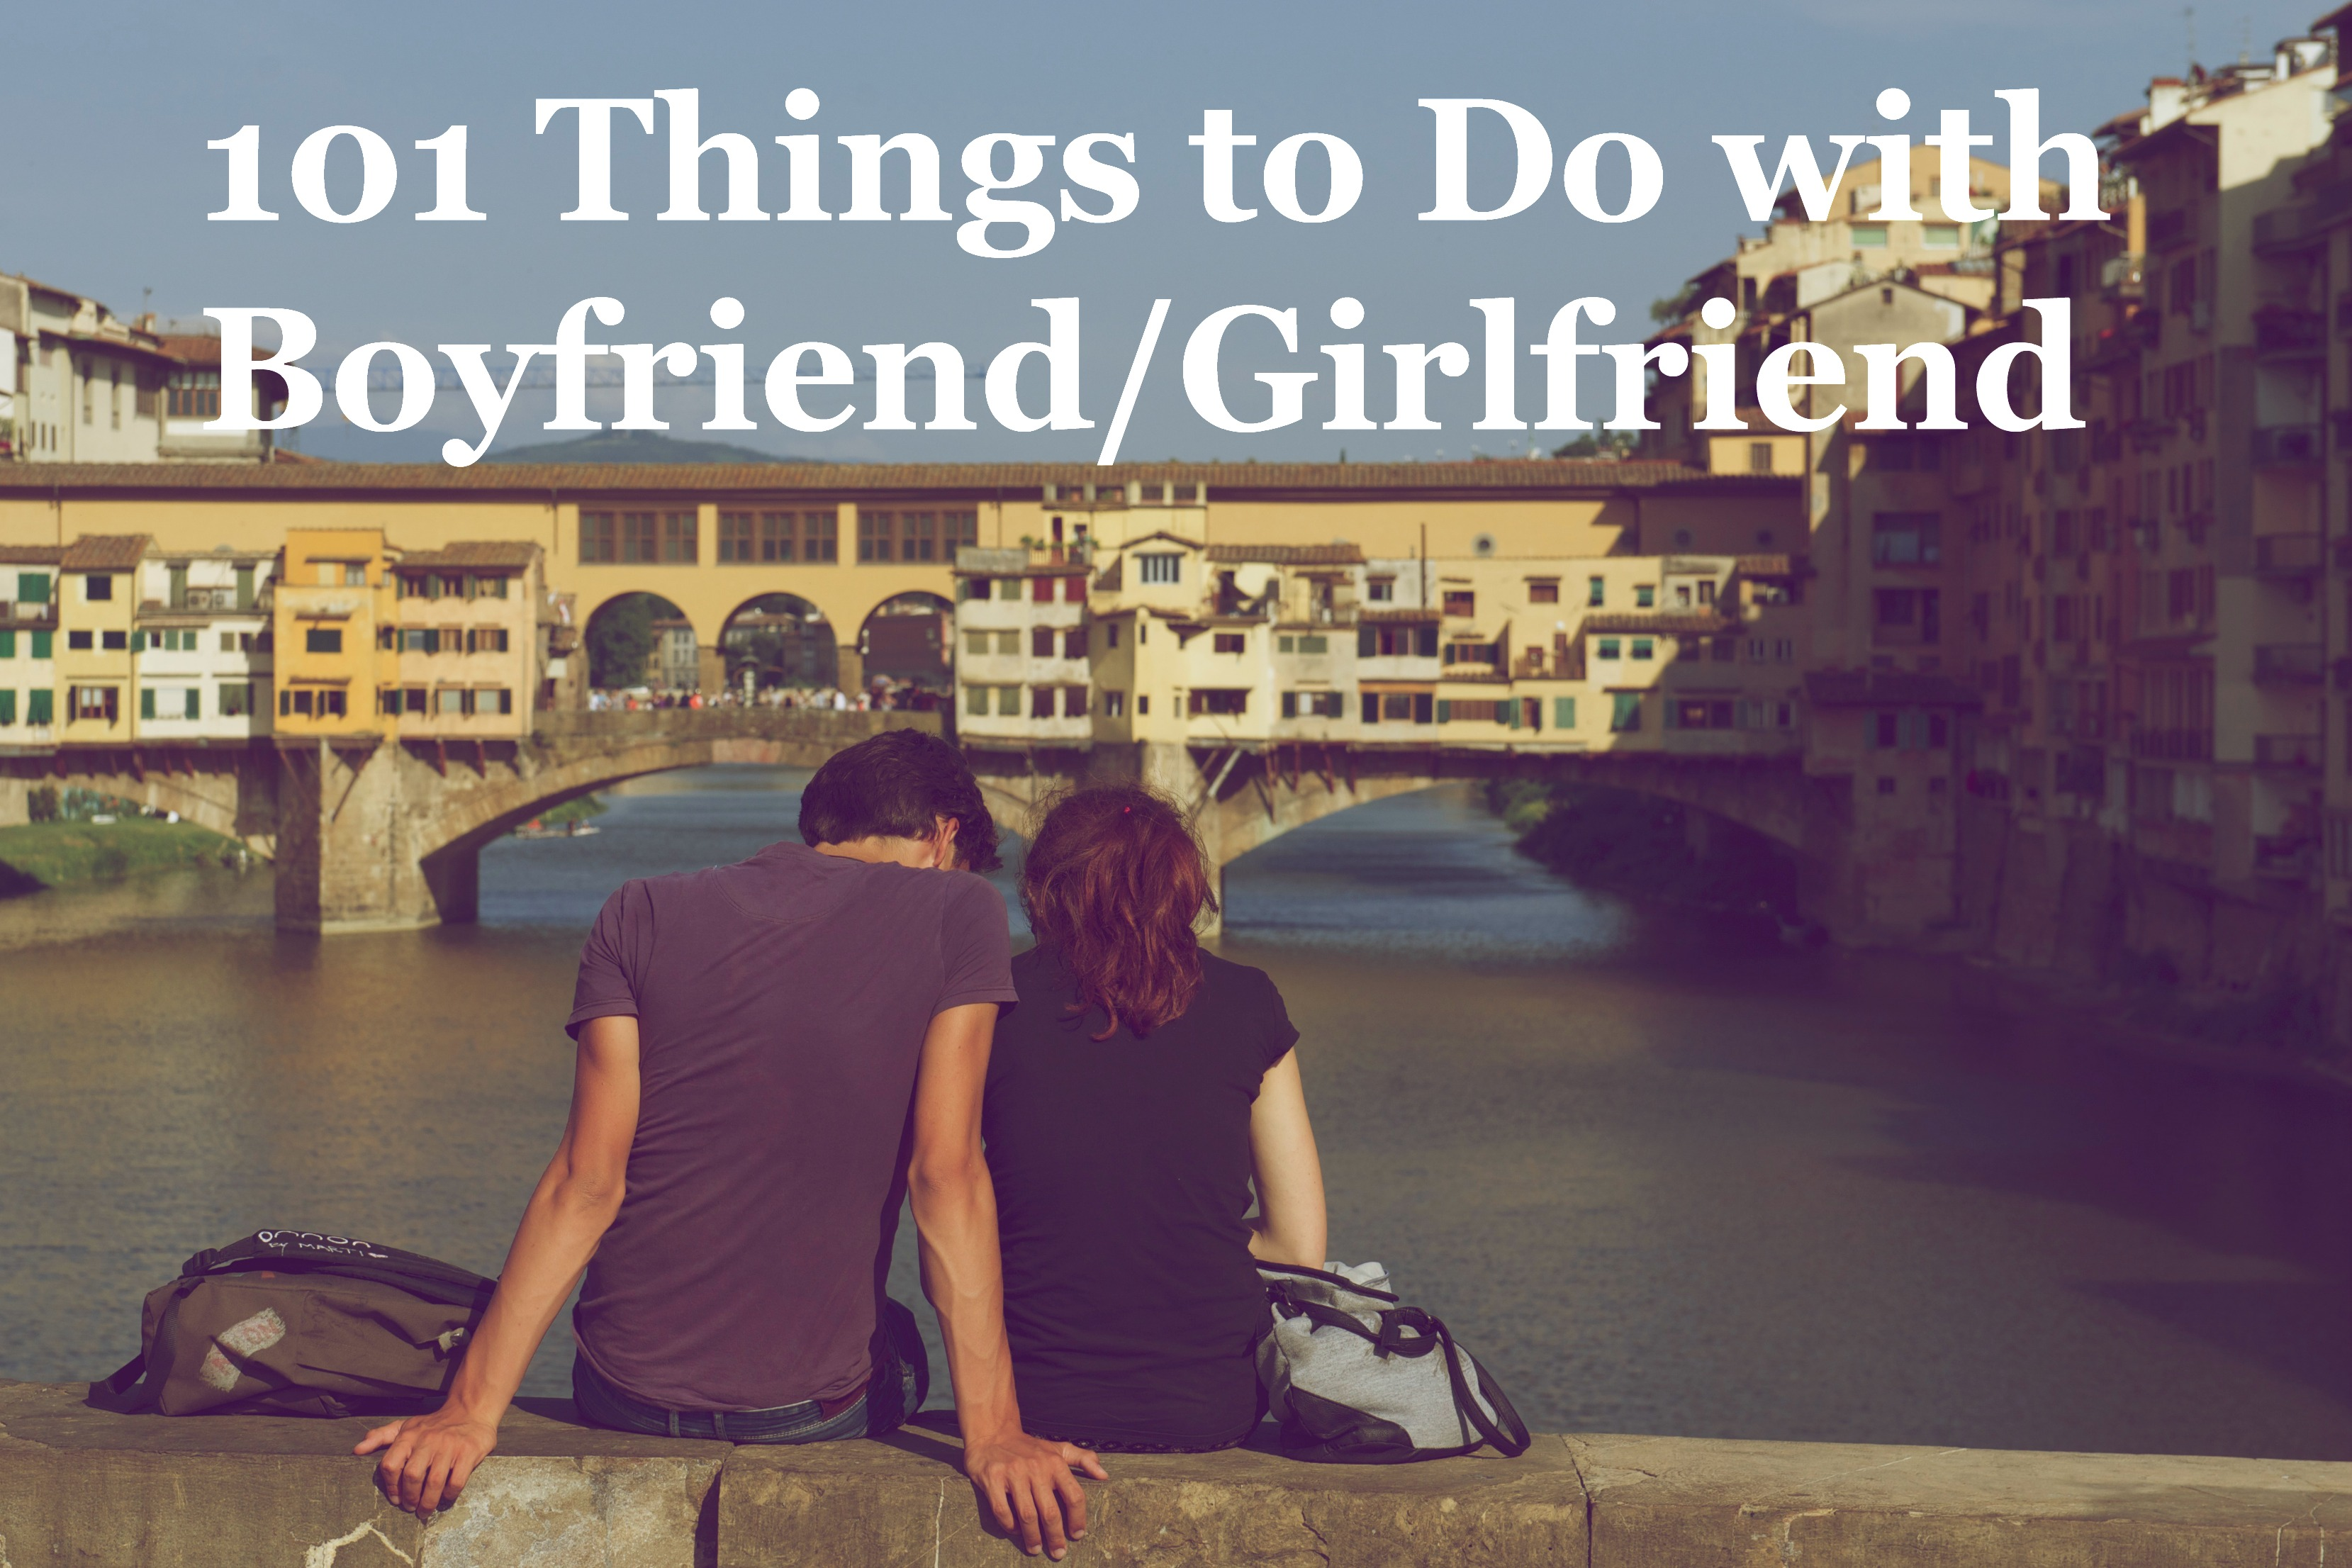 sexual things to do with boyfriend